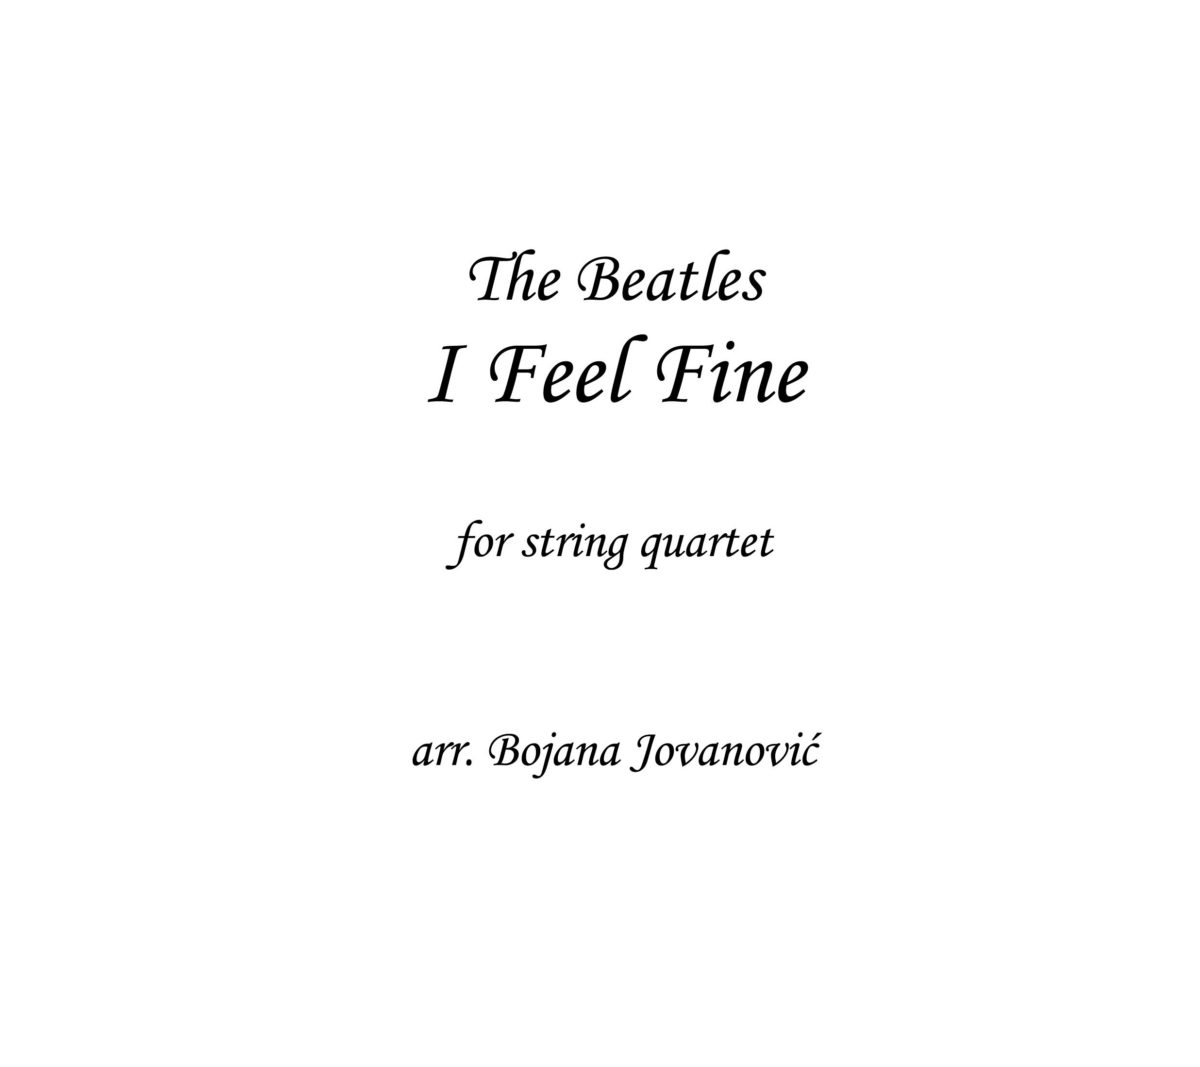 I feel fine (The Beatles) - Sheet Music